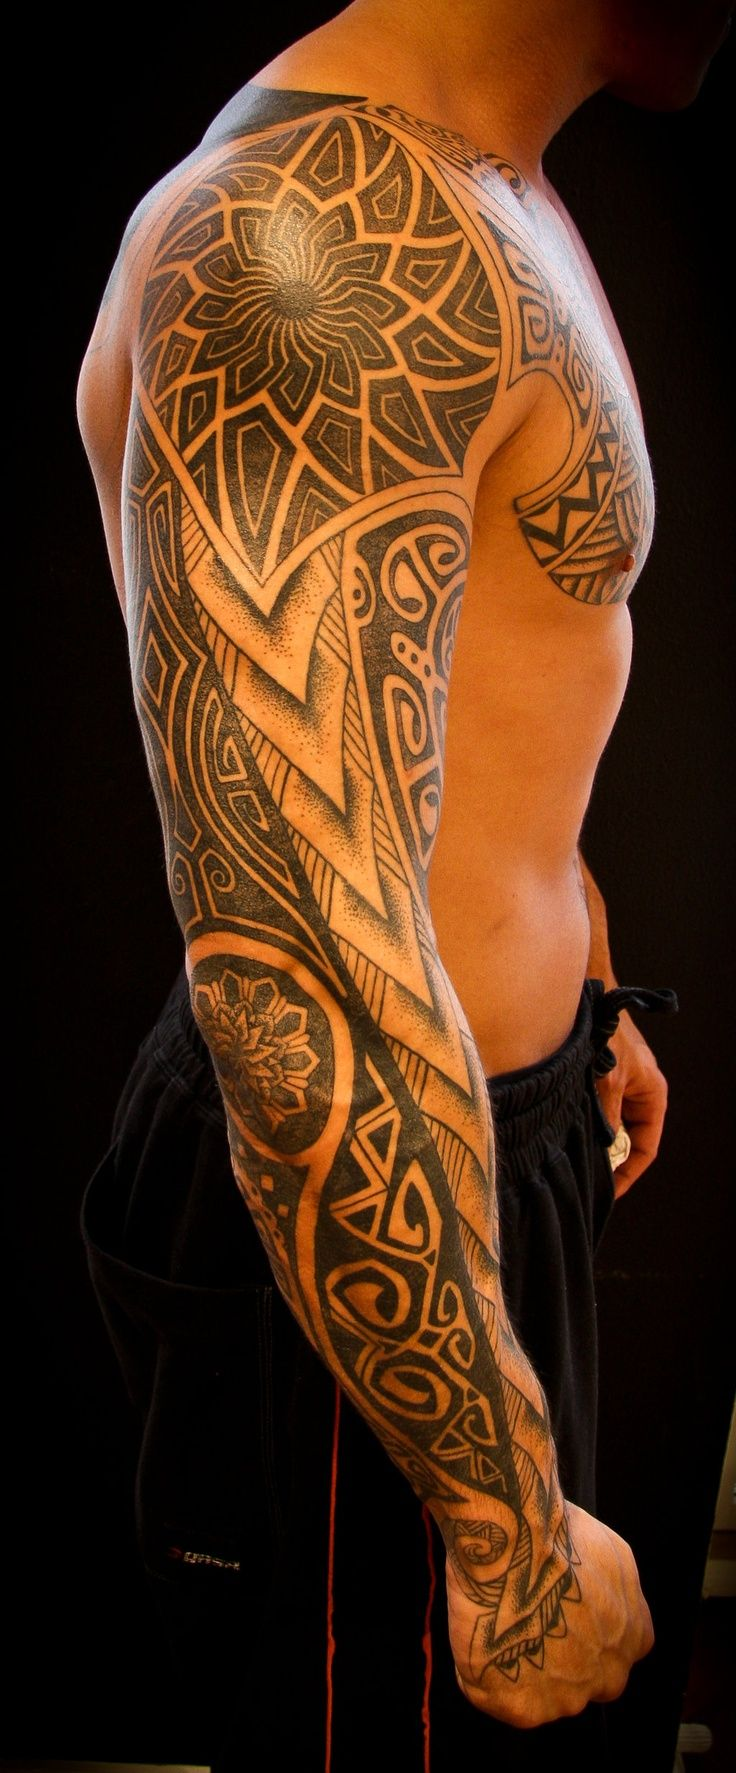 Arm tattoos for men designs and ideas for guys for Cool forearm tattoos